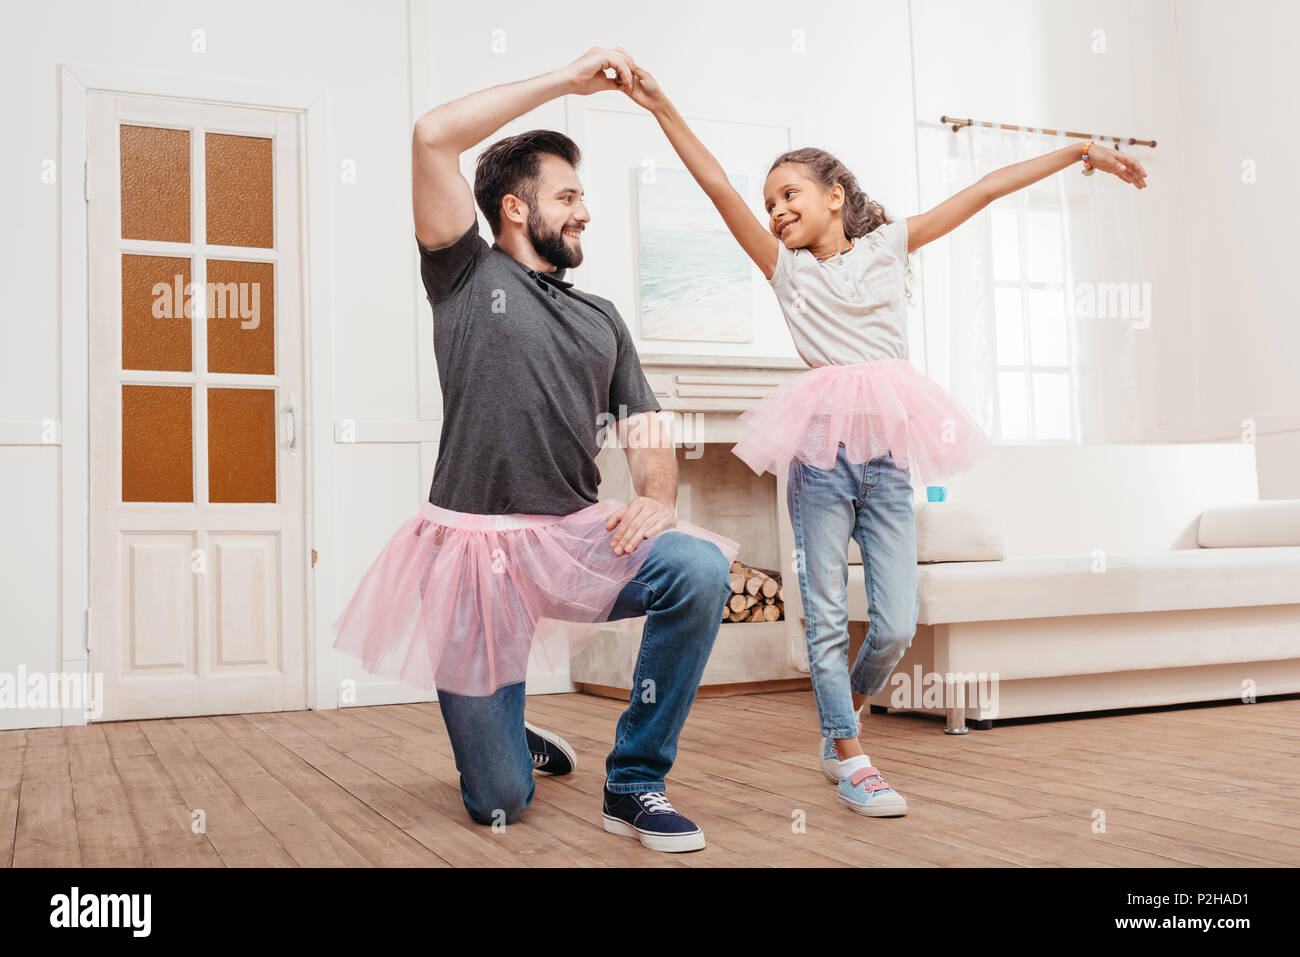 b1980a26ea multicultural father and daughter in pink tutu tulle skirts dancing at home  - Stock Image